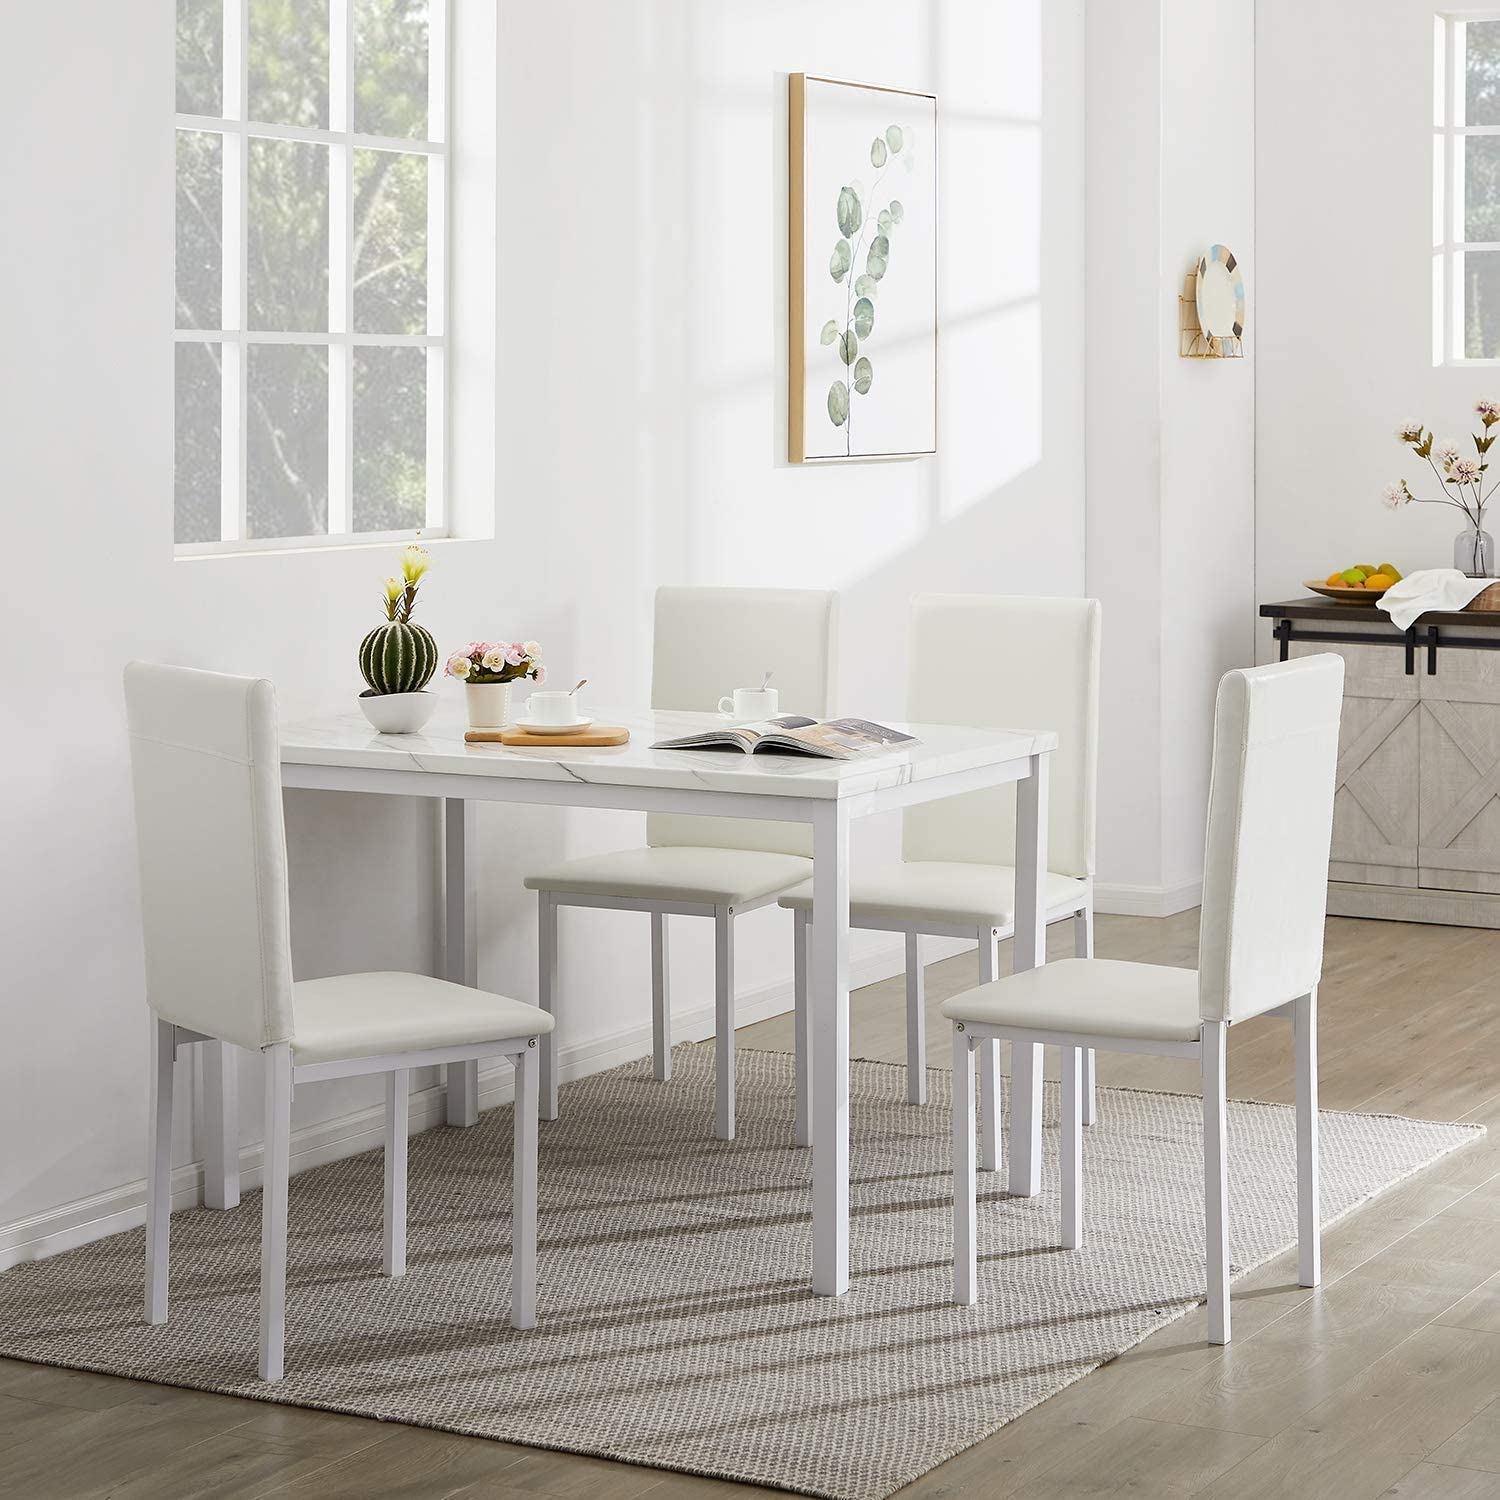 Recaceik 5-Piece Kitchen Table, Faux Marble Dining Set for 4 with Chairs for Small Spaces Living Room Home Furniture, White…